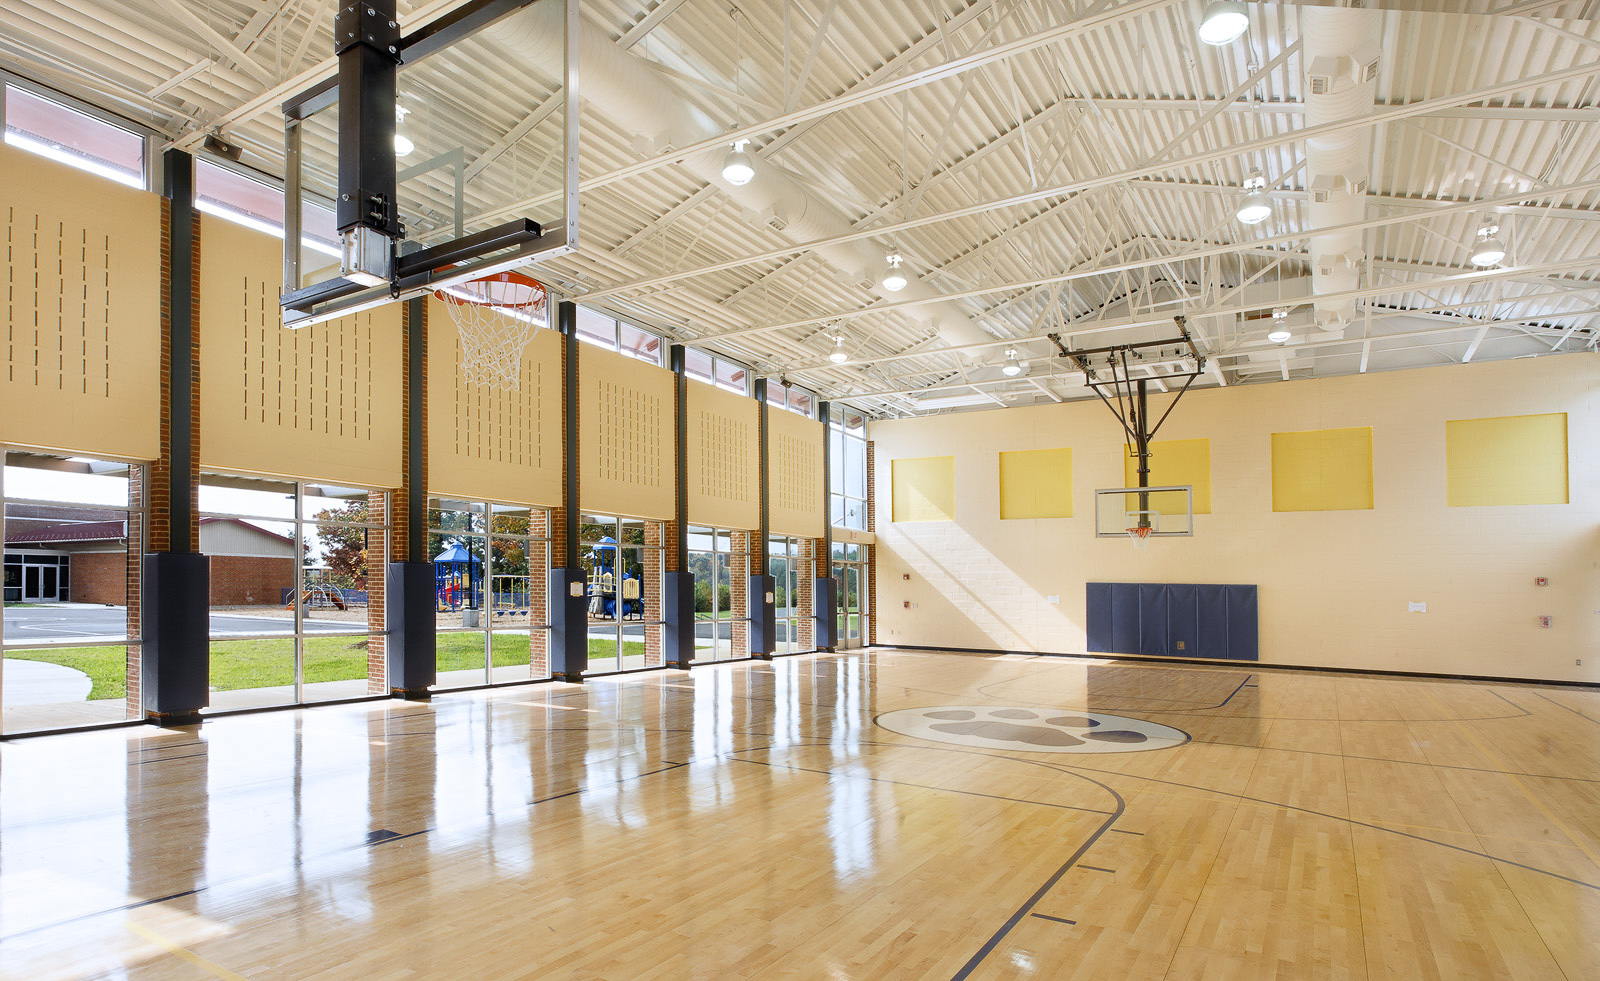 Virginia Hamrick Photography - Elementary School Gymnasium